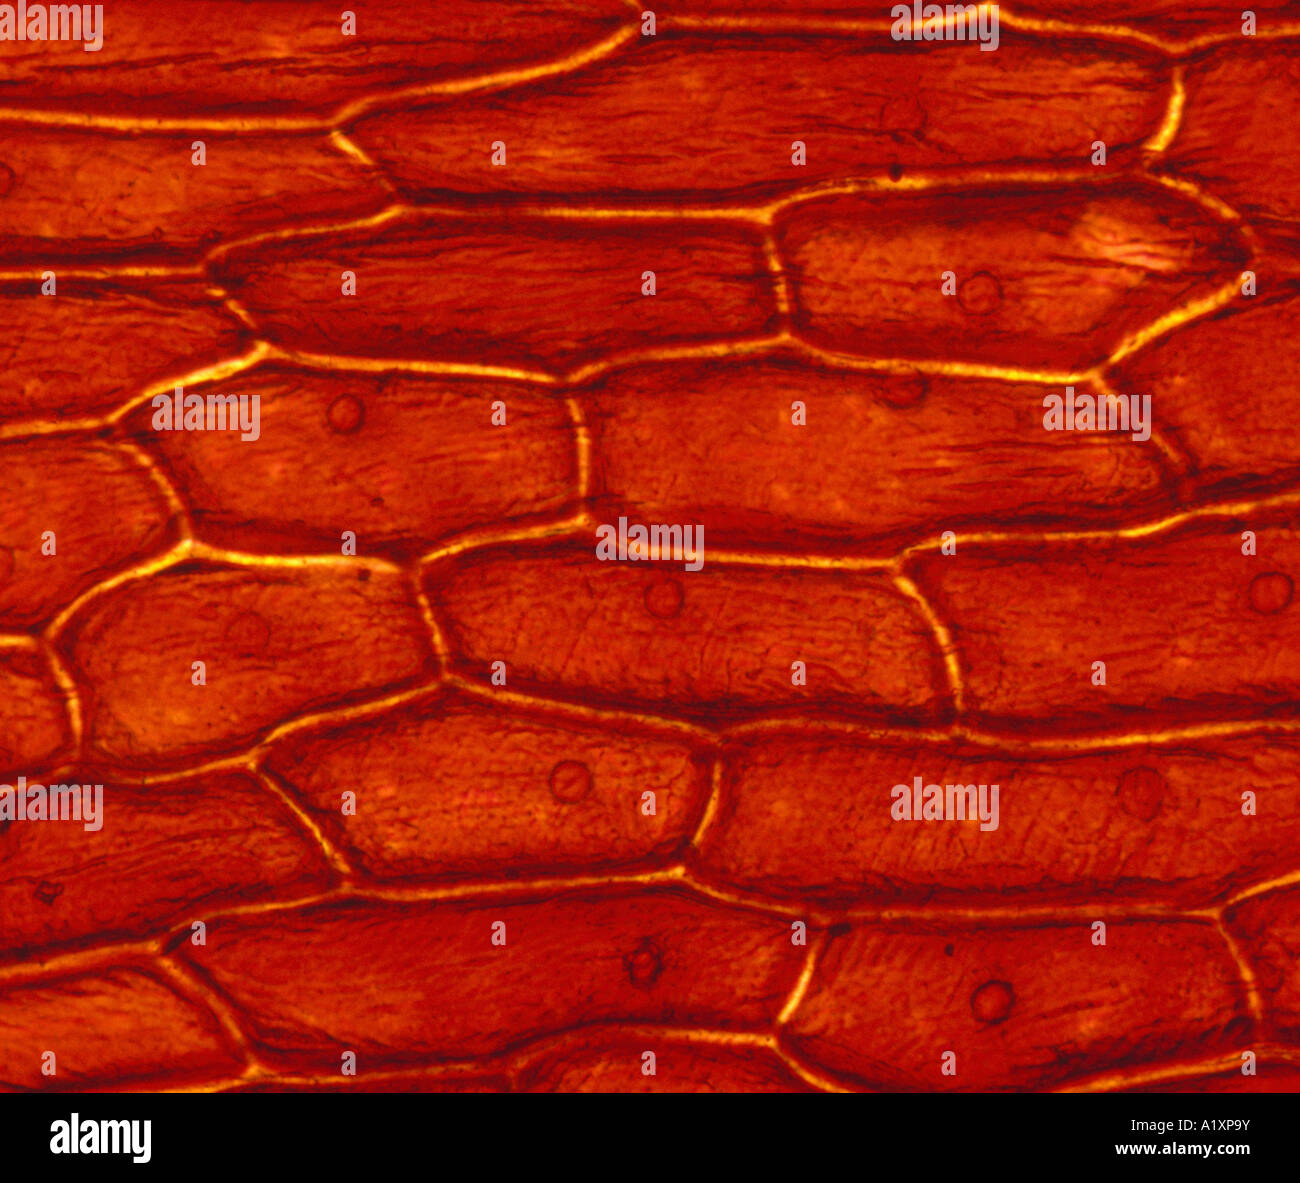 onion cell diagram r33 stereo wiring cells stock photos and images alamy